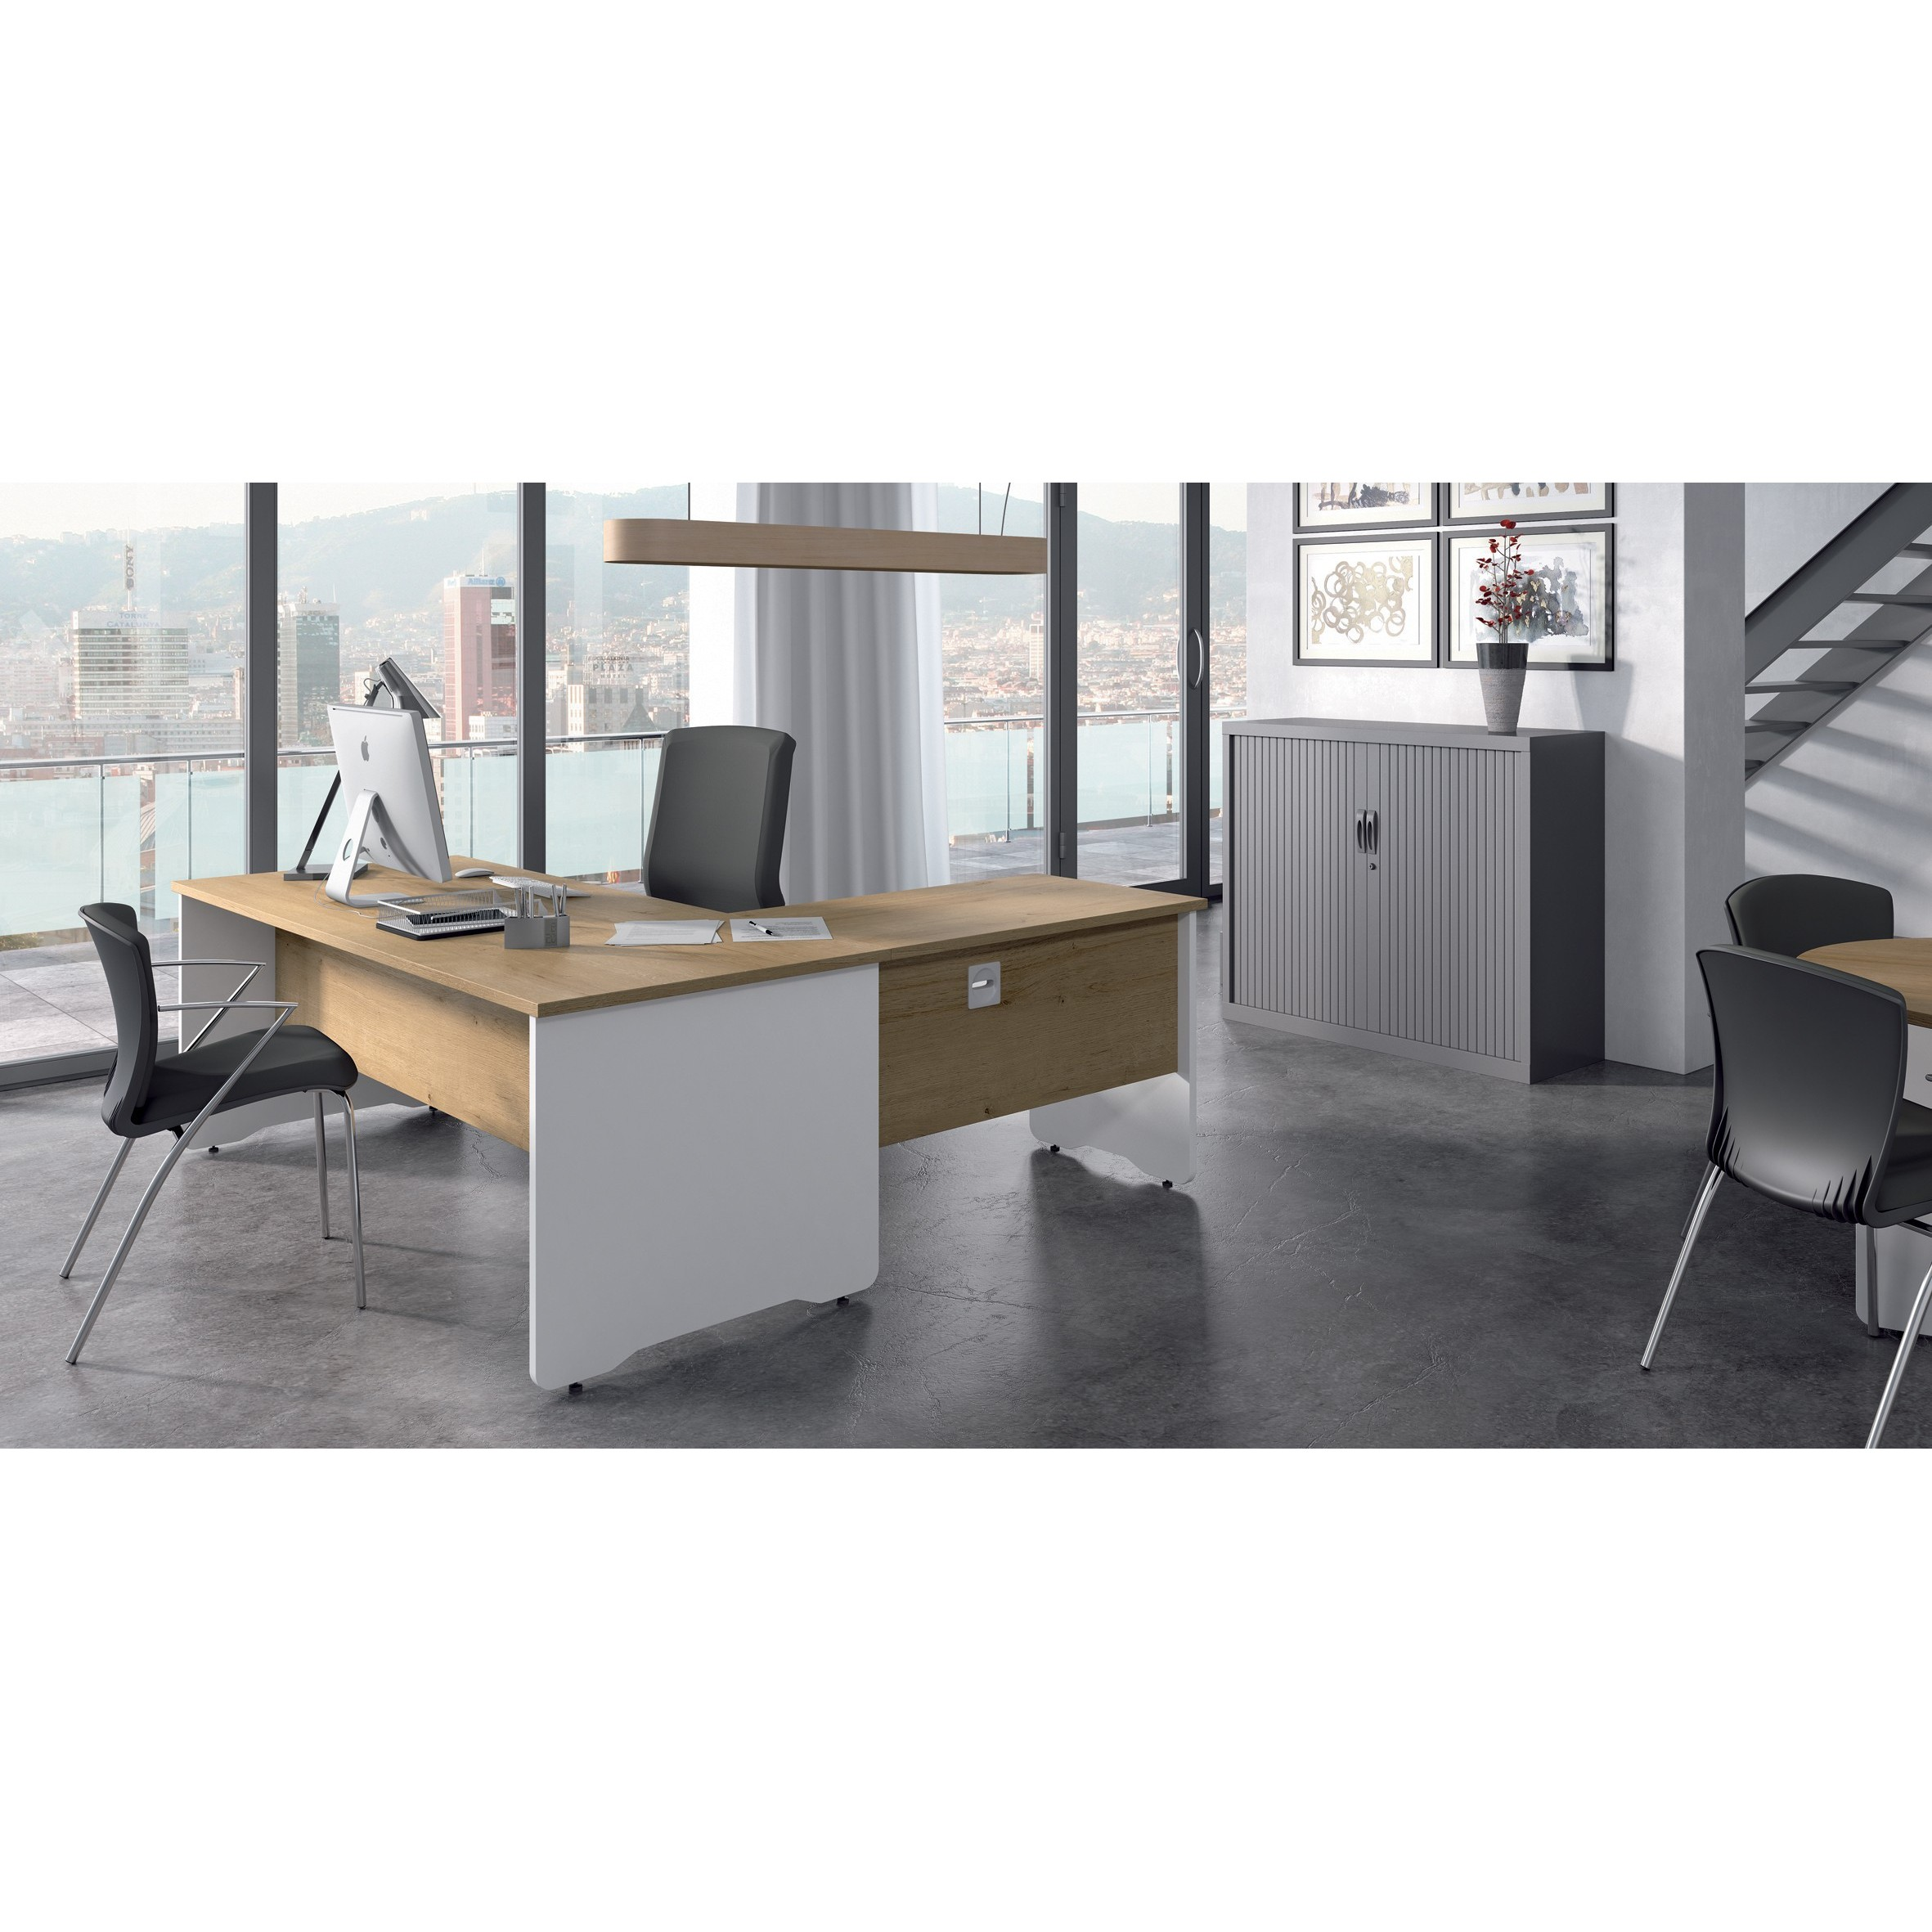 TABLE OFFICE 'S WORK SERIES 140X80 WHITE/GREY